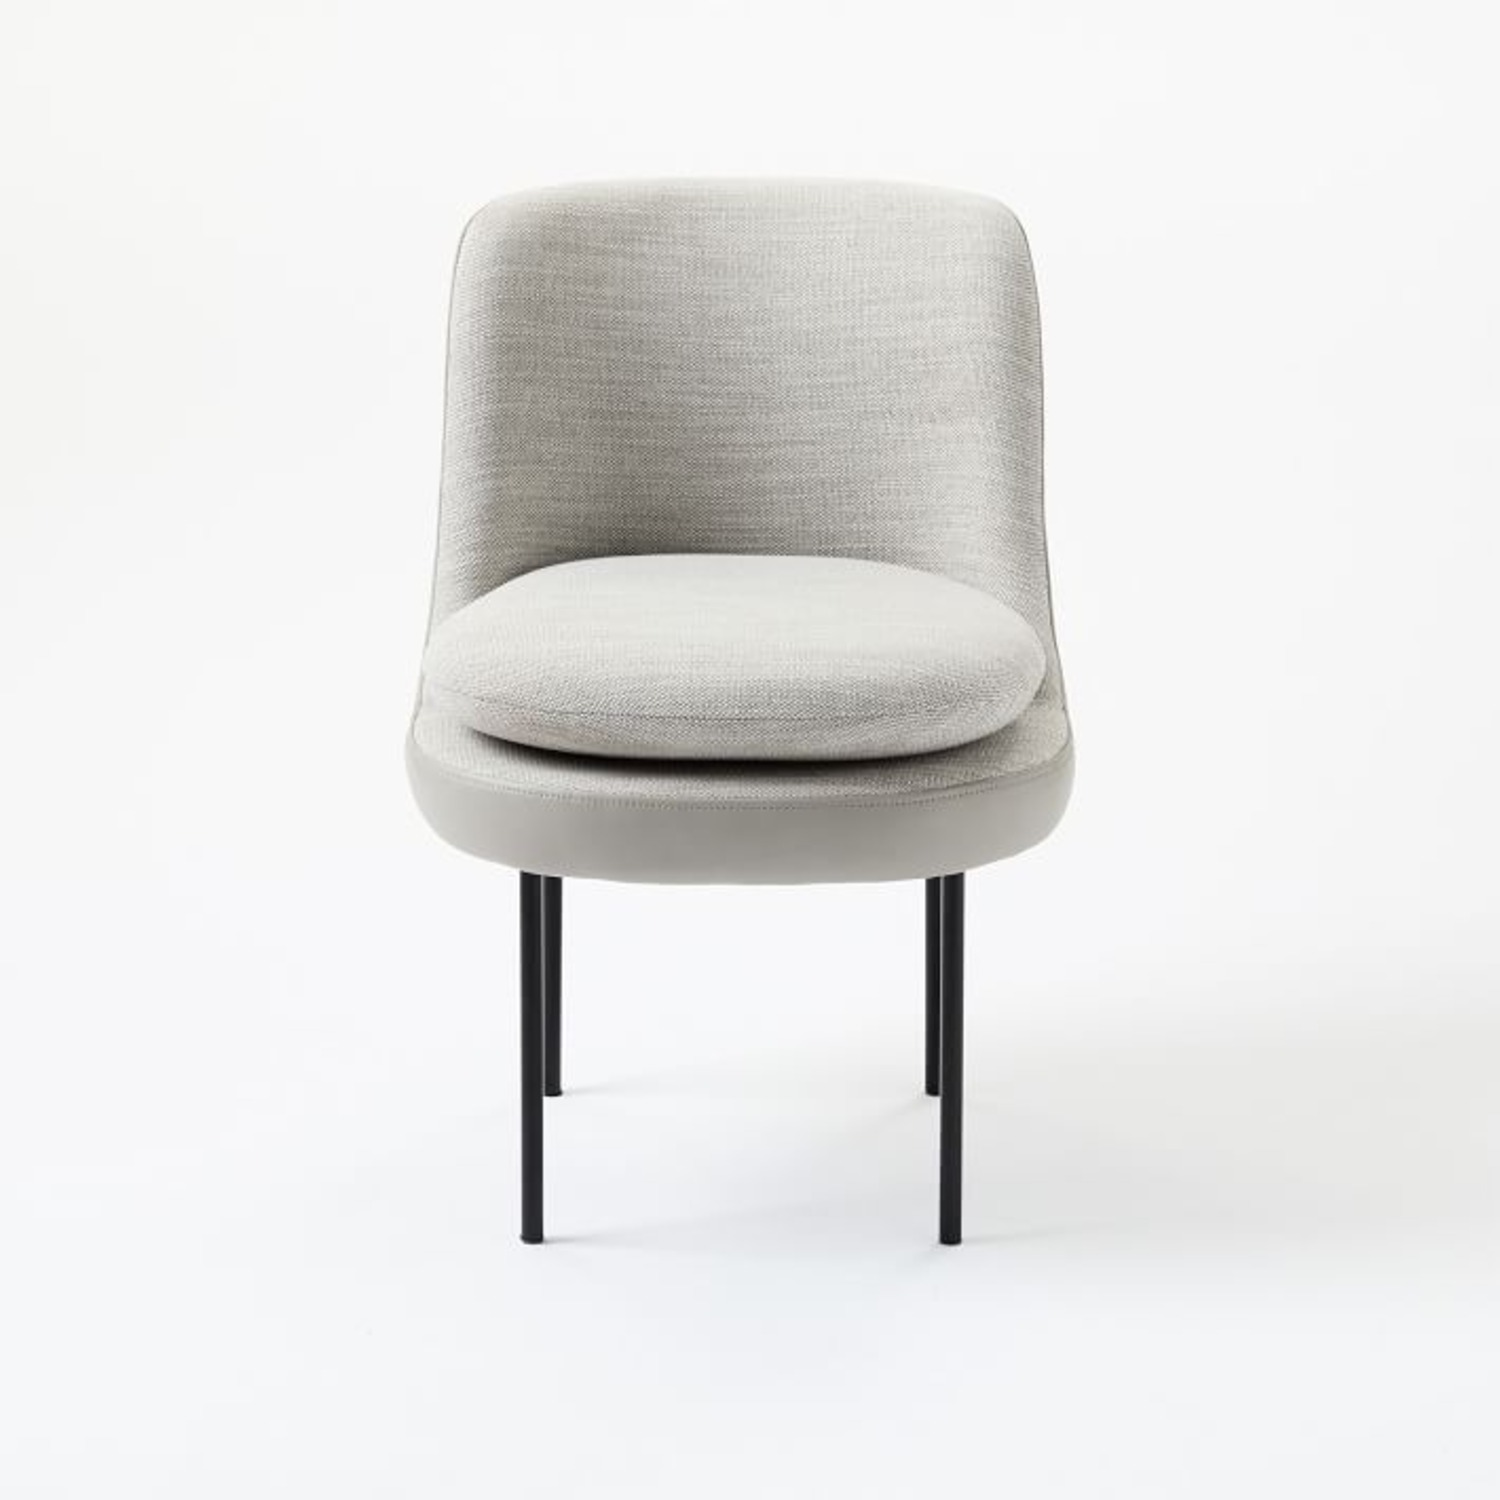 West Elm Modern Curved Leather Back Dining Chair - image-3